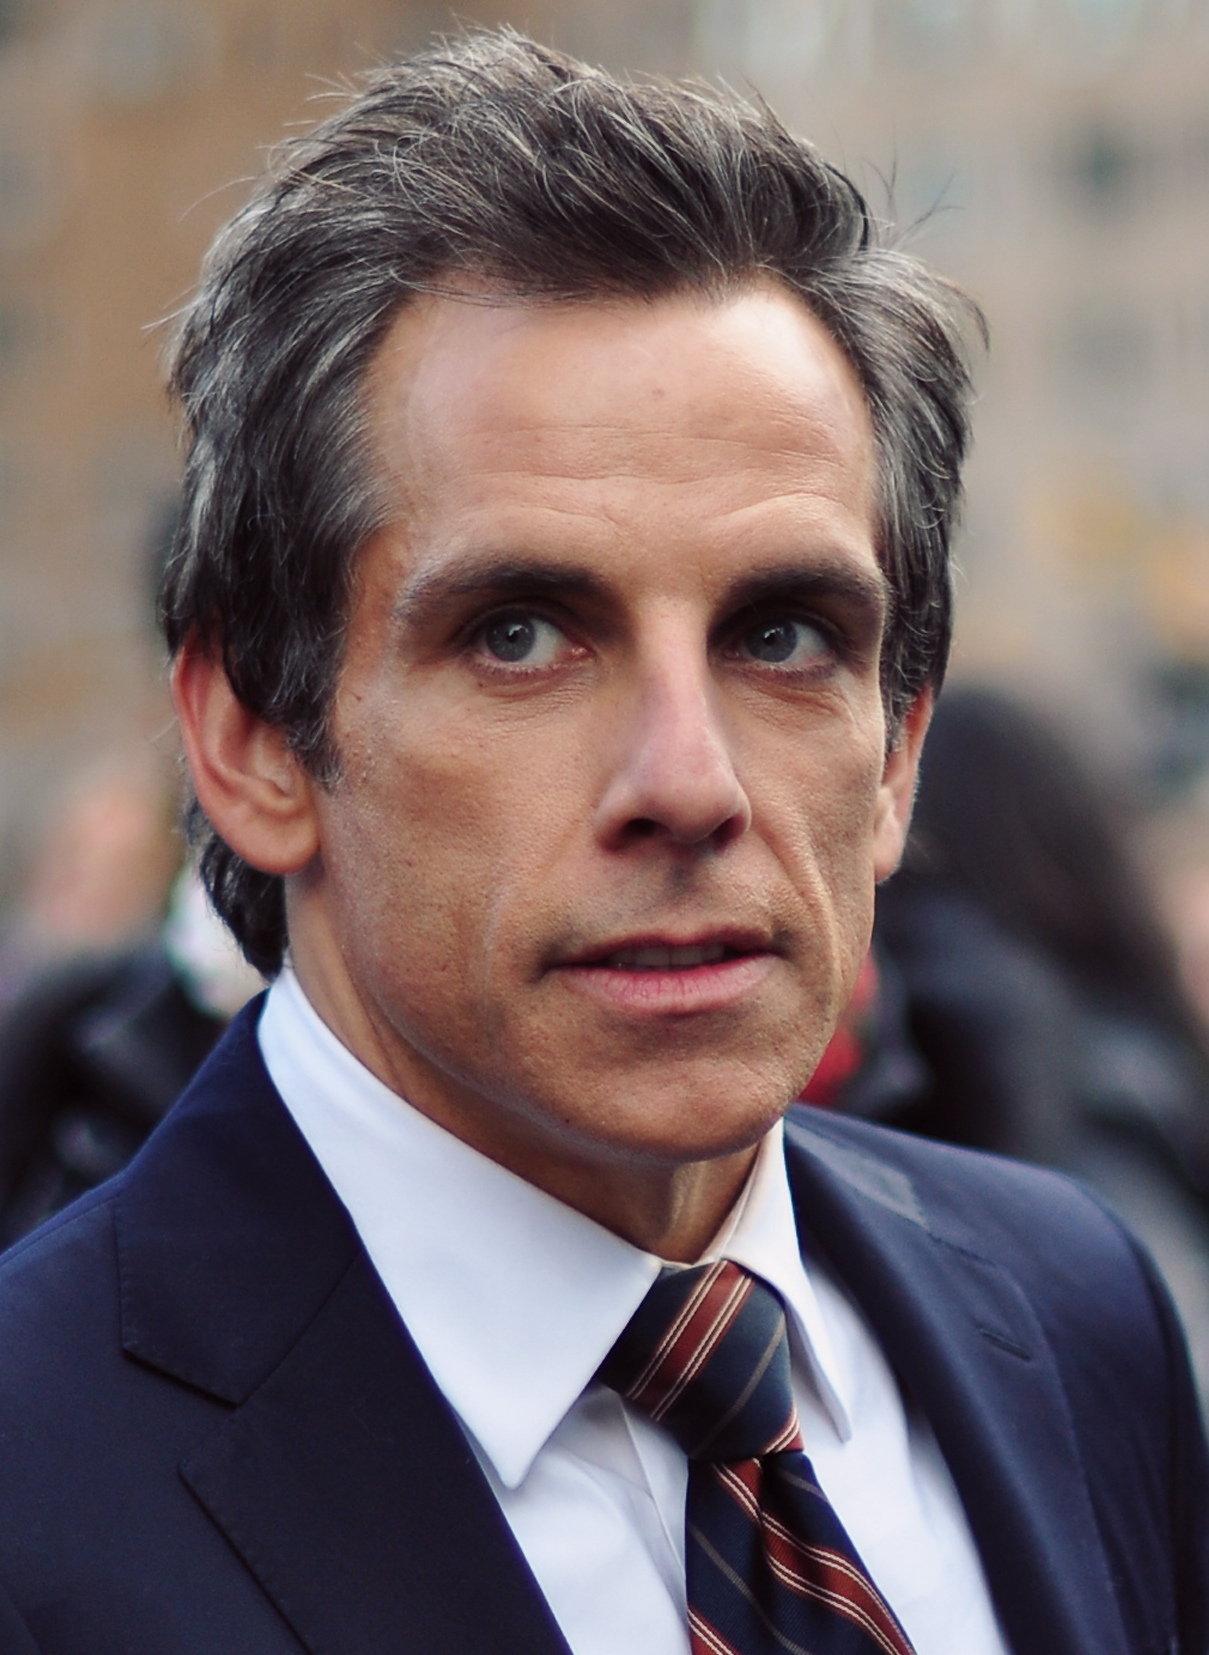 The 52-year old son of father Jerry Stiller and mother Anne Meara, 168 cm tall Ben Stiller in 2018 photo